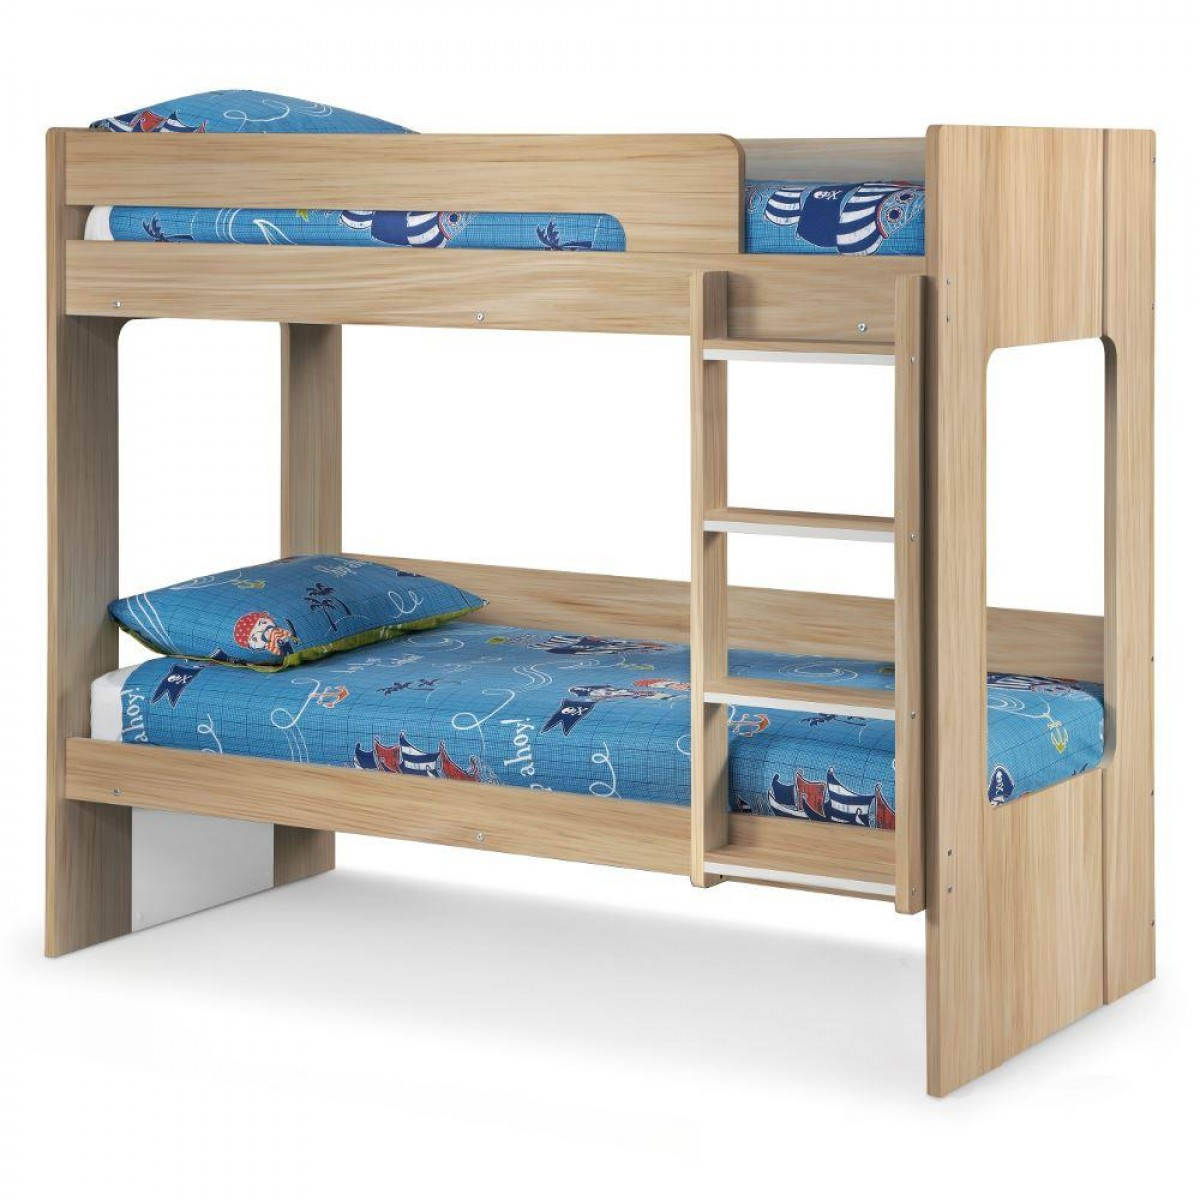 Ellie Oak Wooden Bunk Bed